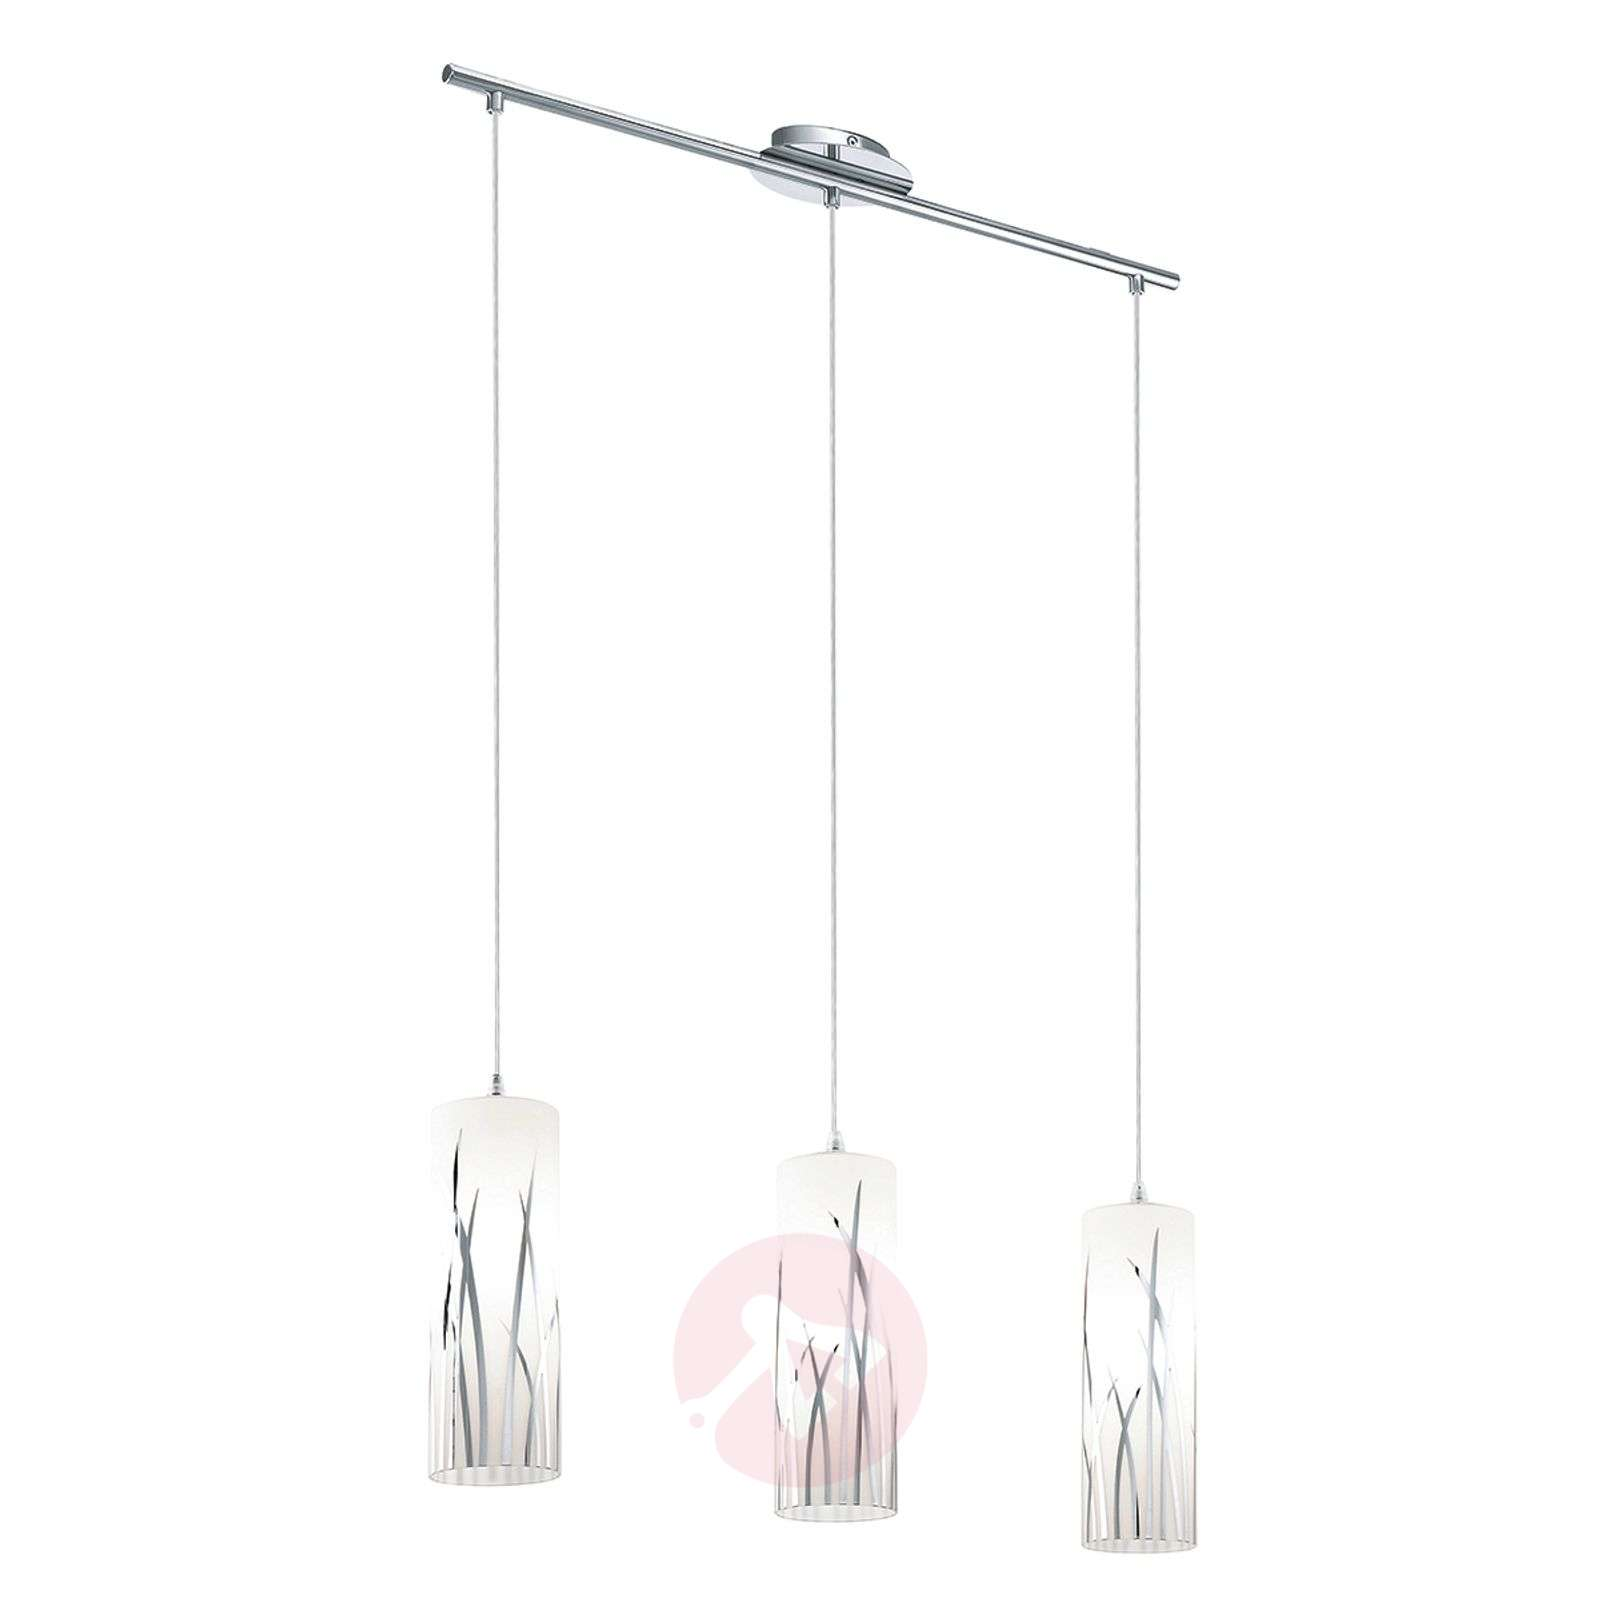 Suspension rivato 3 lampes d cor d herbes for Suspension trois lampes